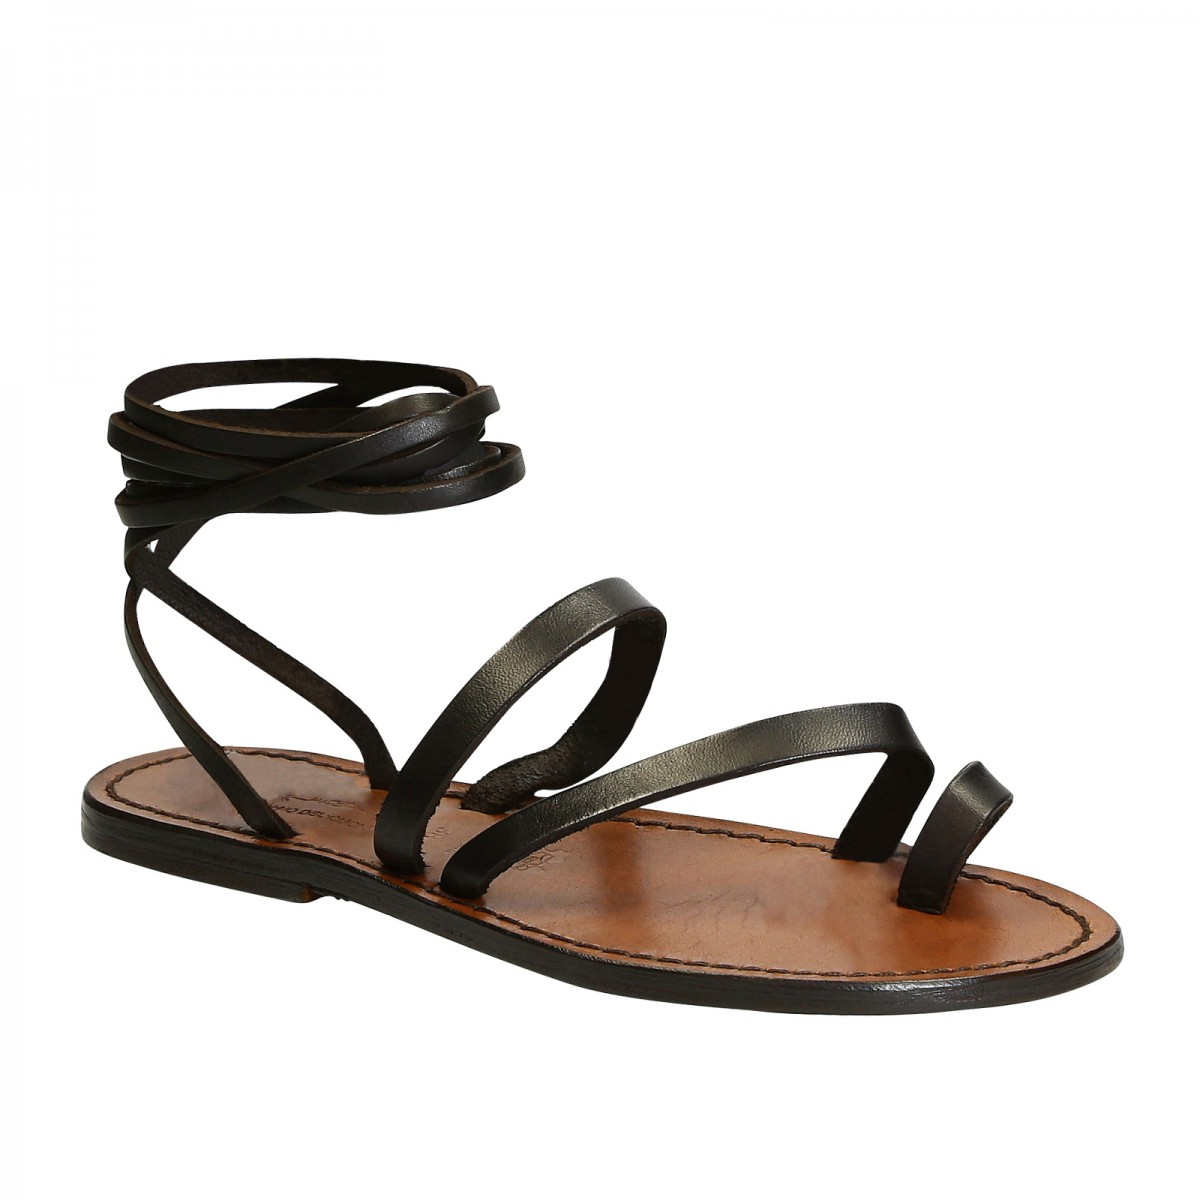 227ce60caf501 Handmade flat strappy sandals in brown calf leather